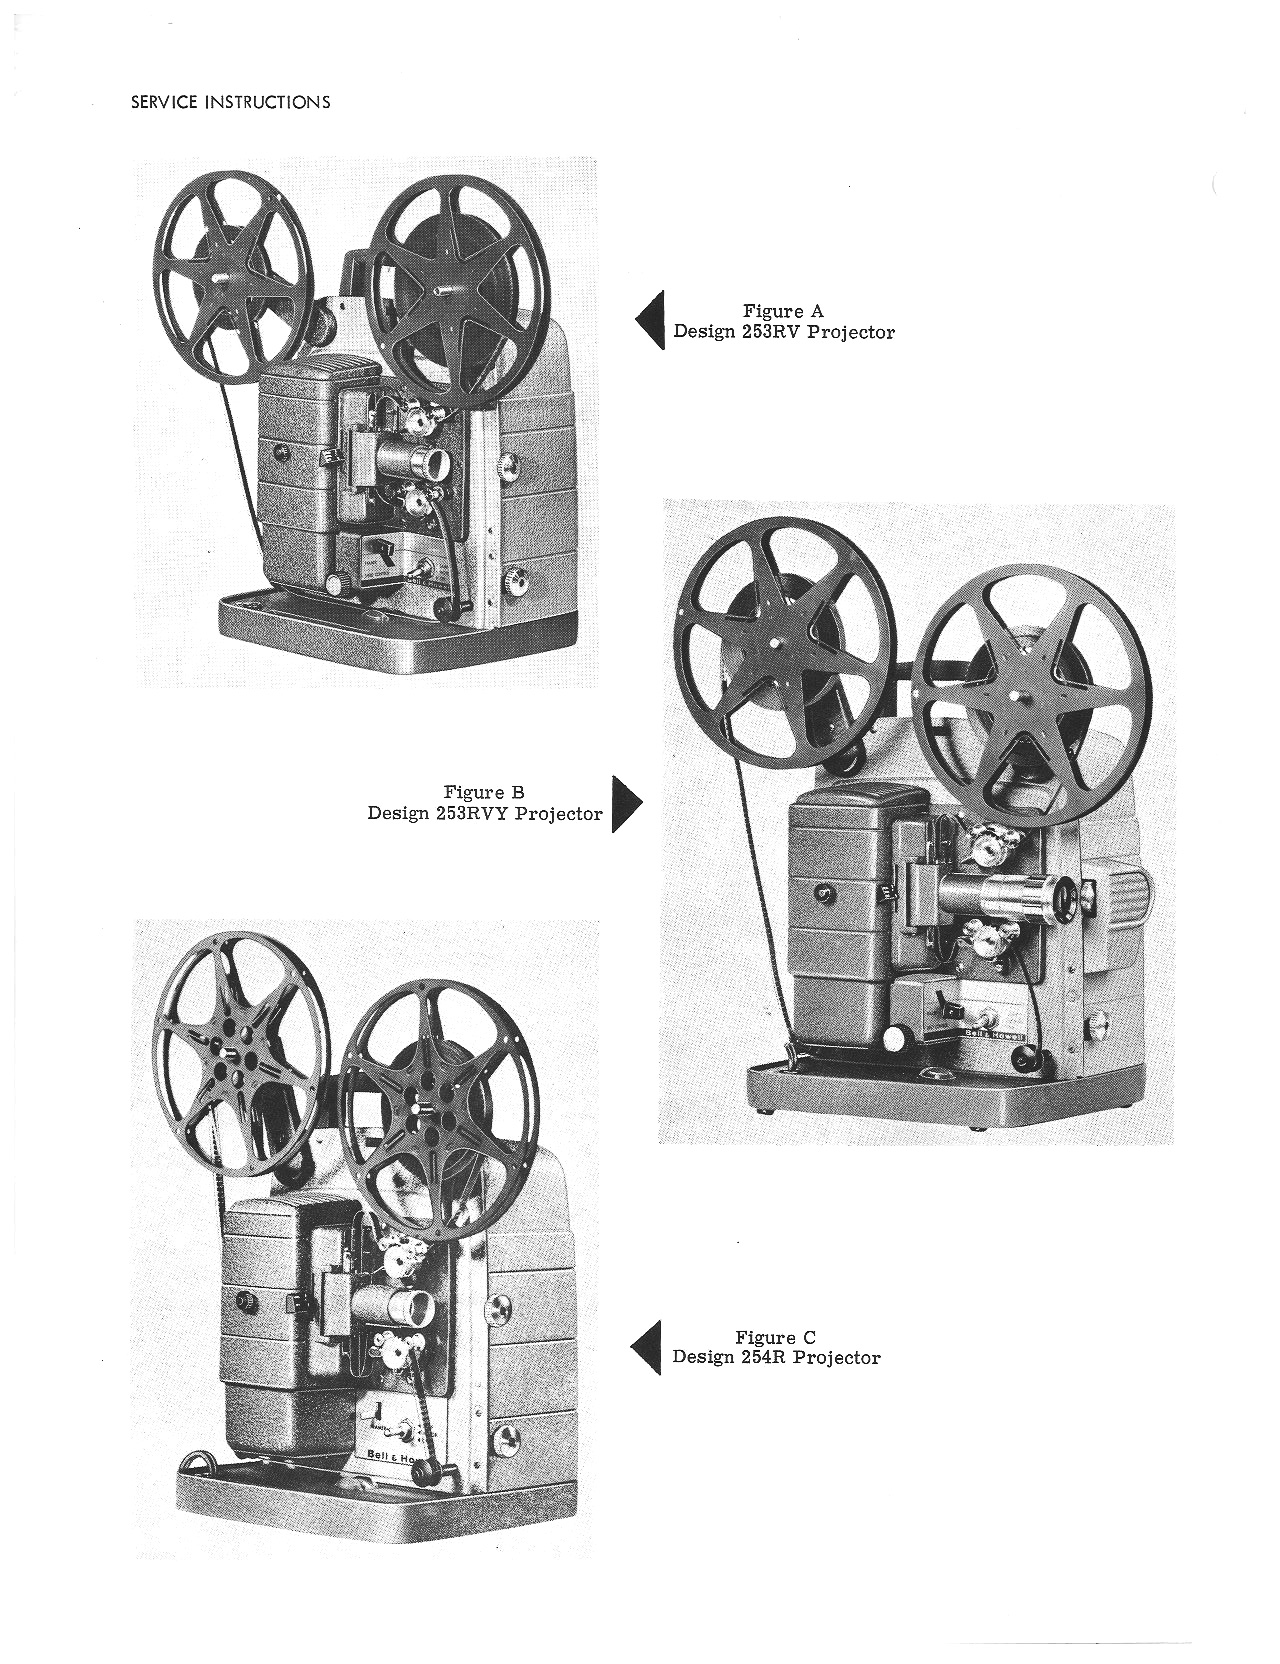 Bell & Howell 253, 254 8mm Movie Projector Service and